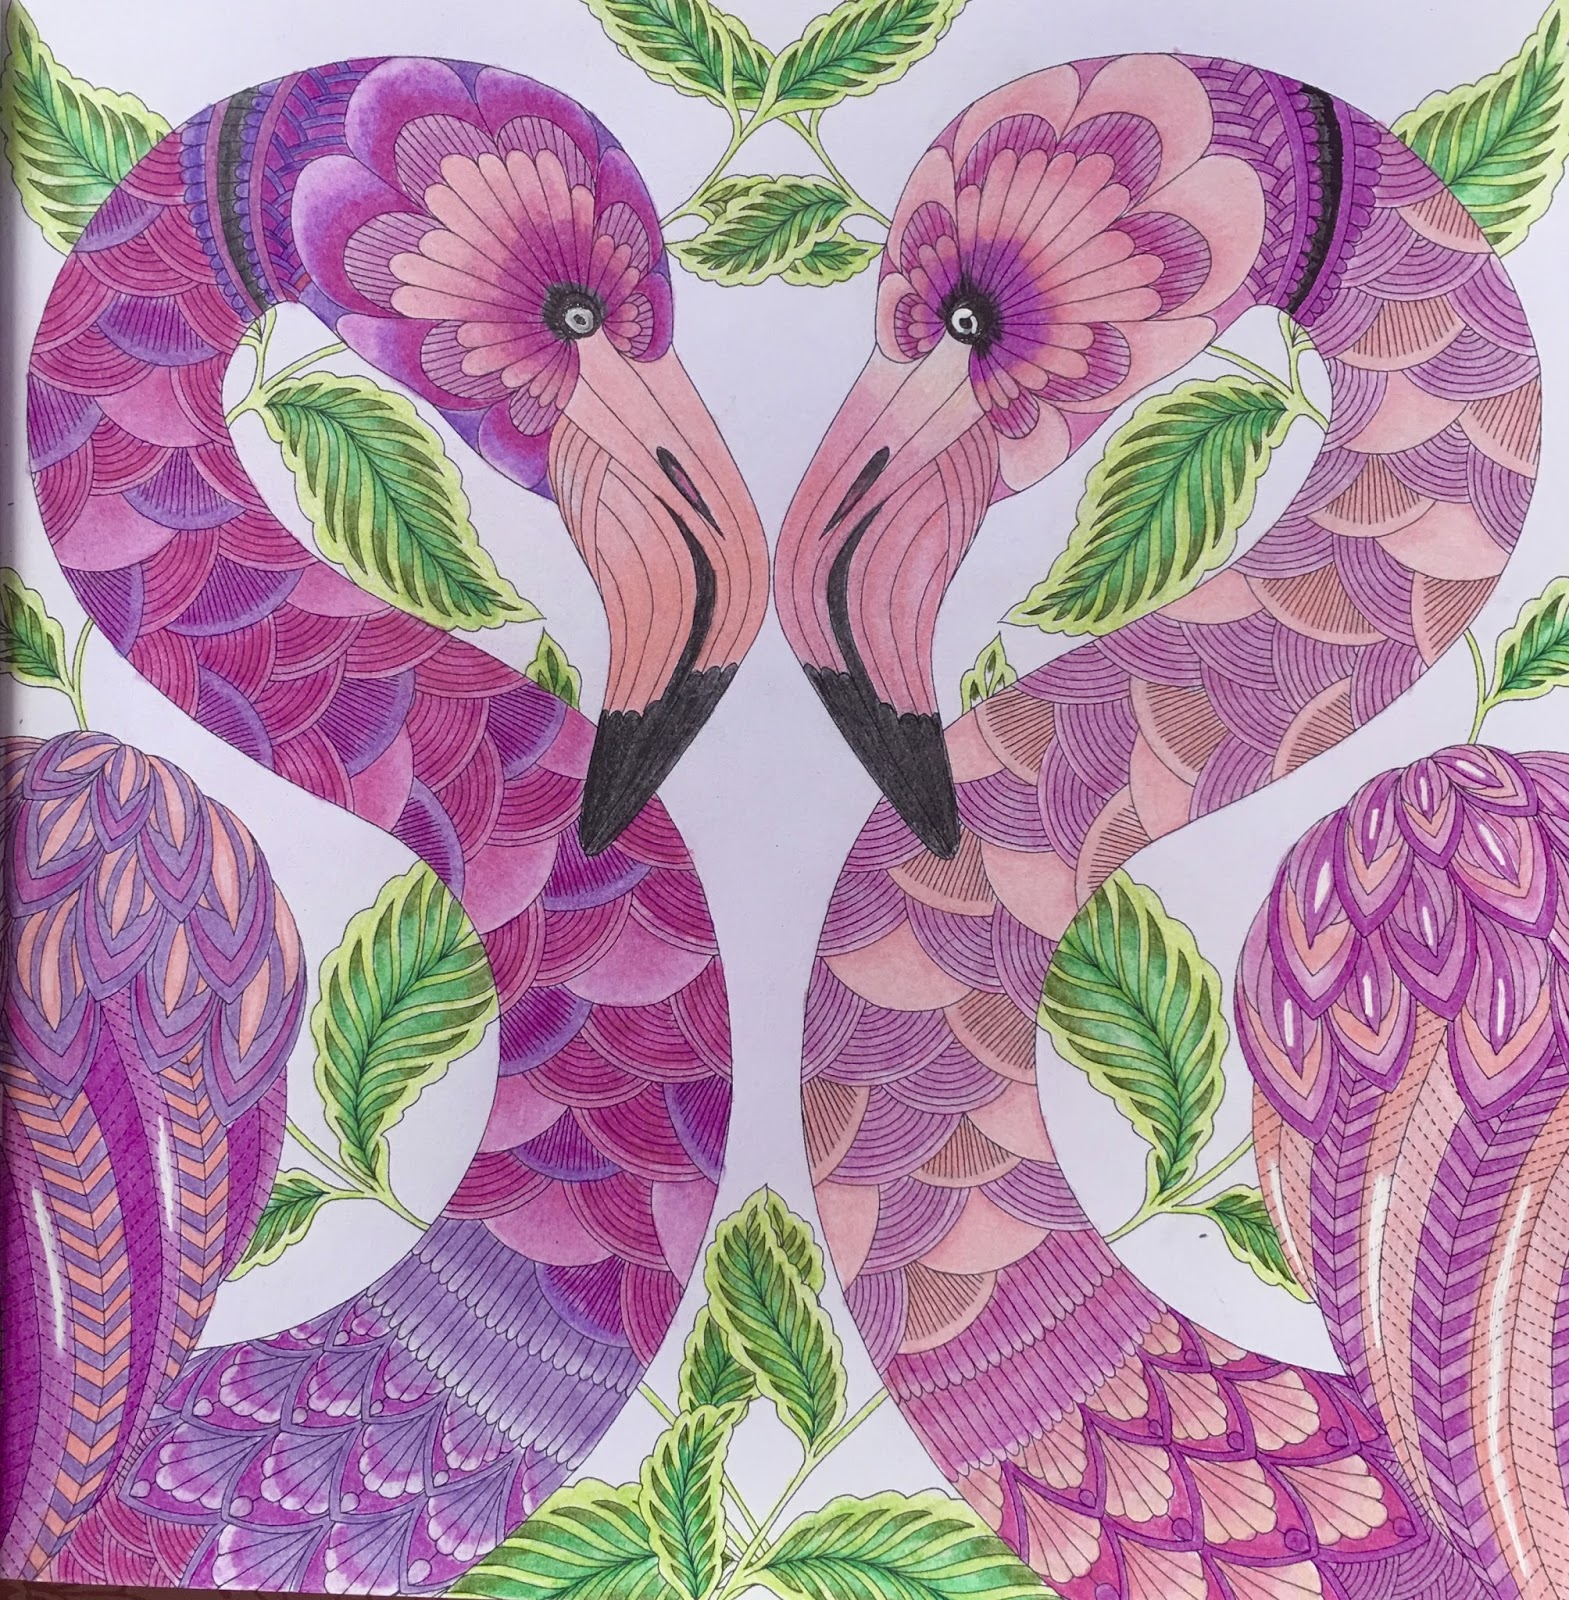 Here Are A Few Pages I Colored From The Tropical World Coloring Book Beautiful Great Quality